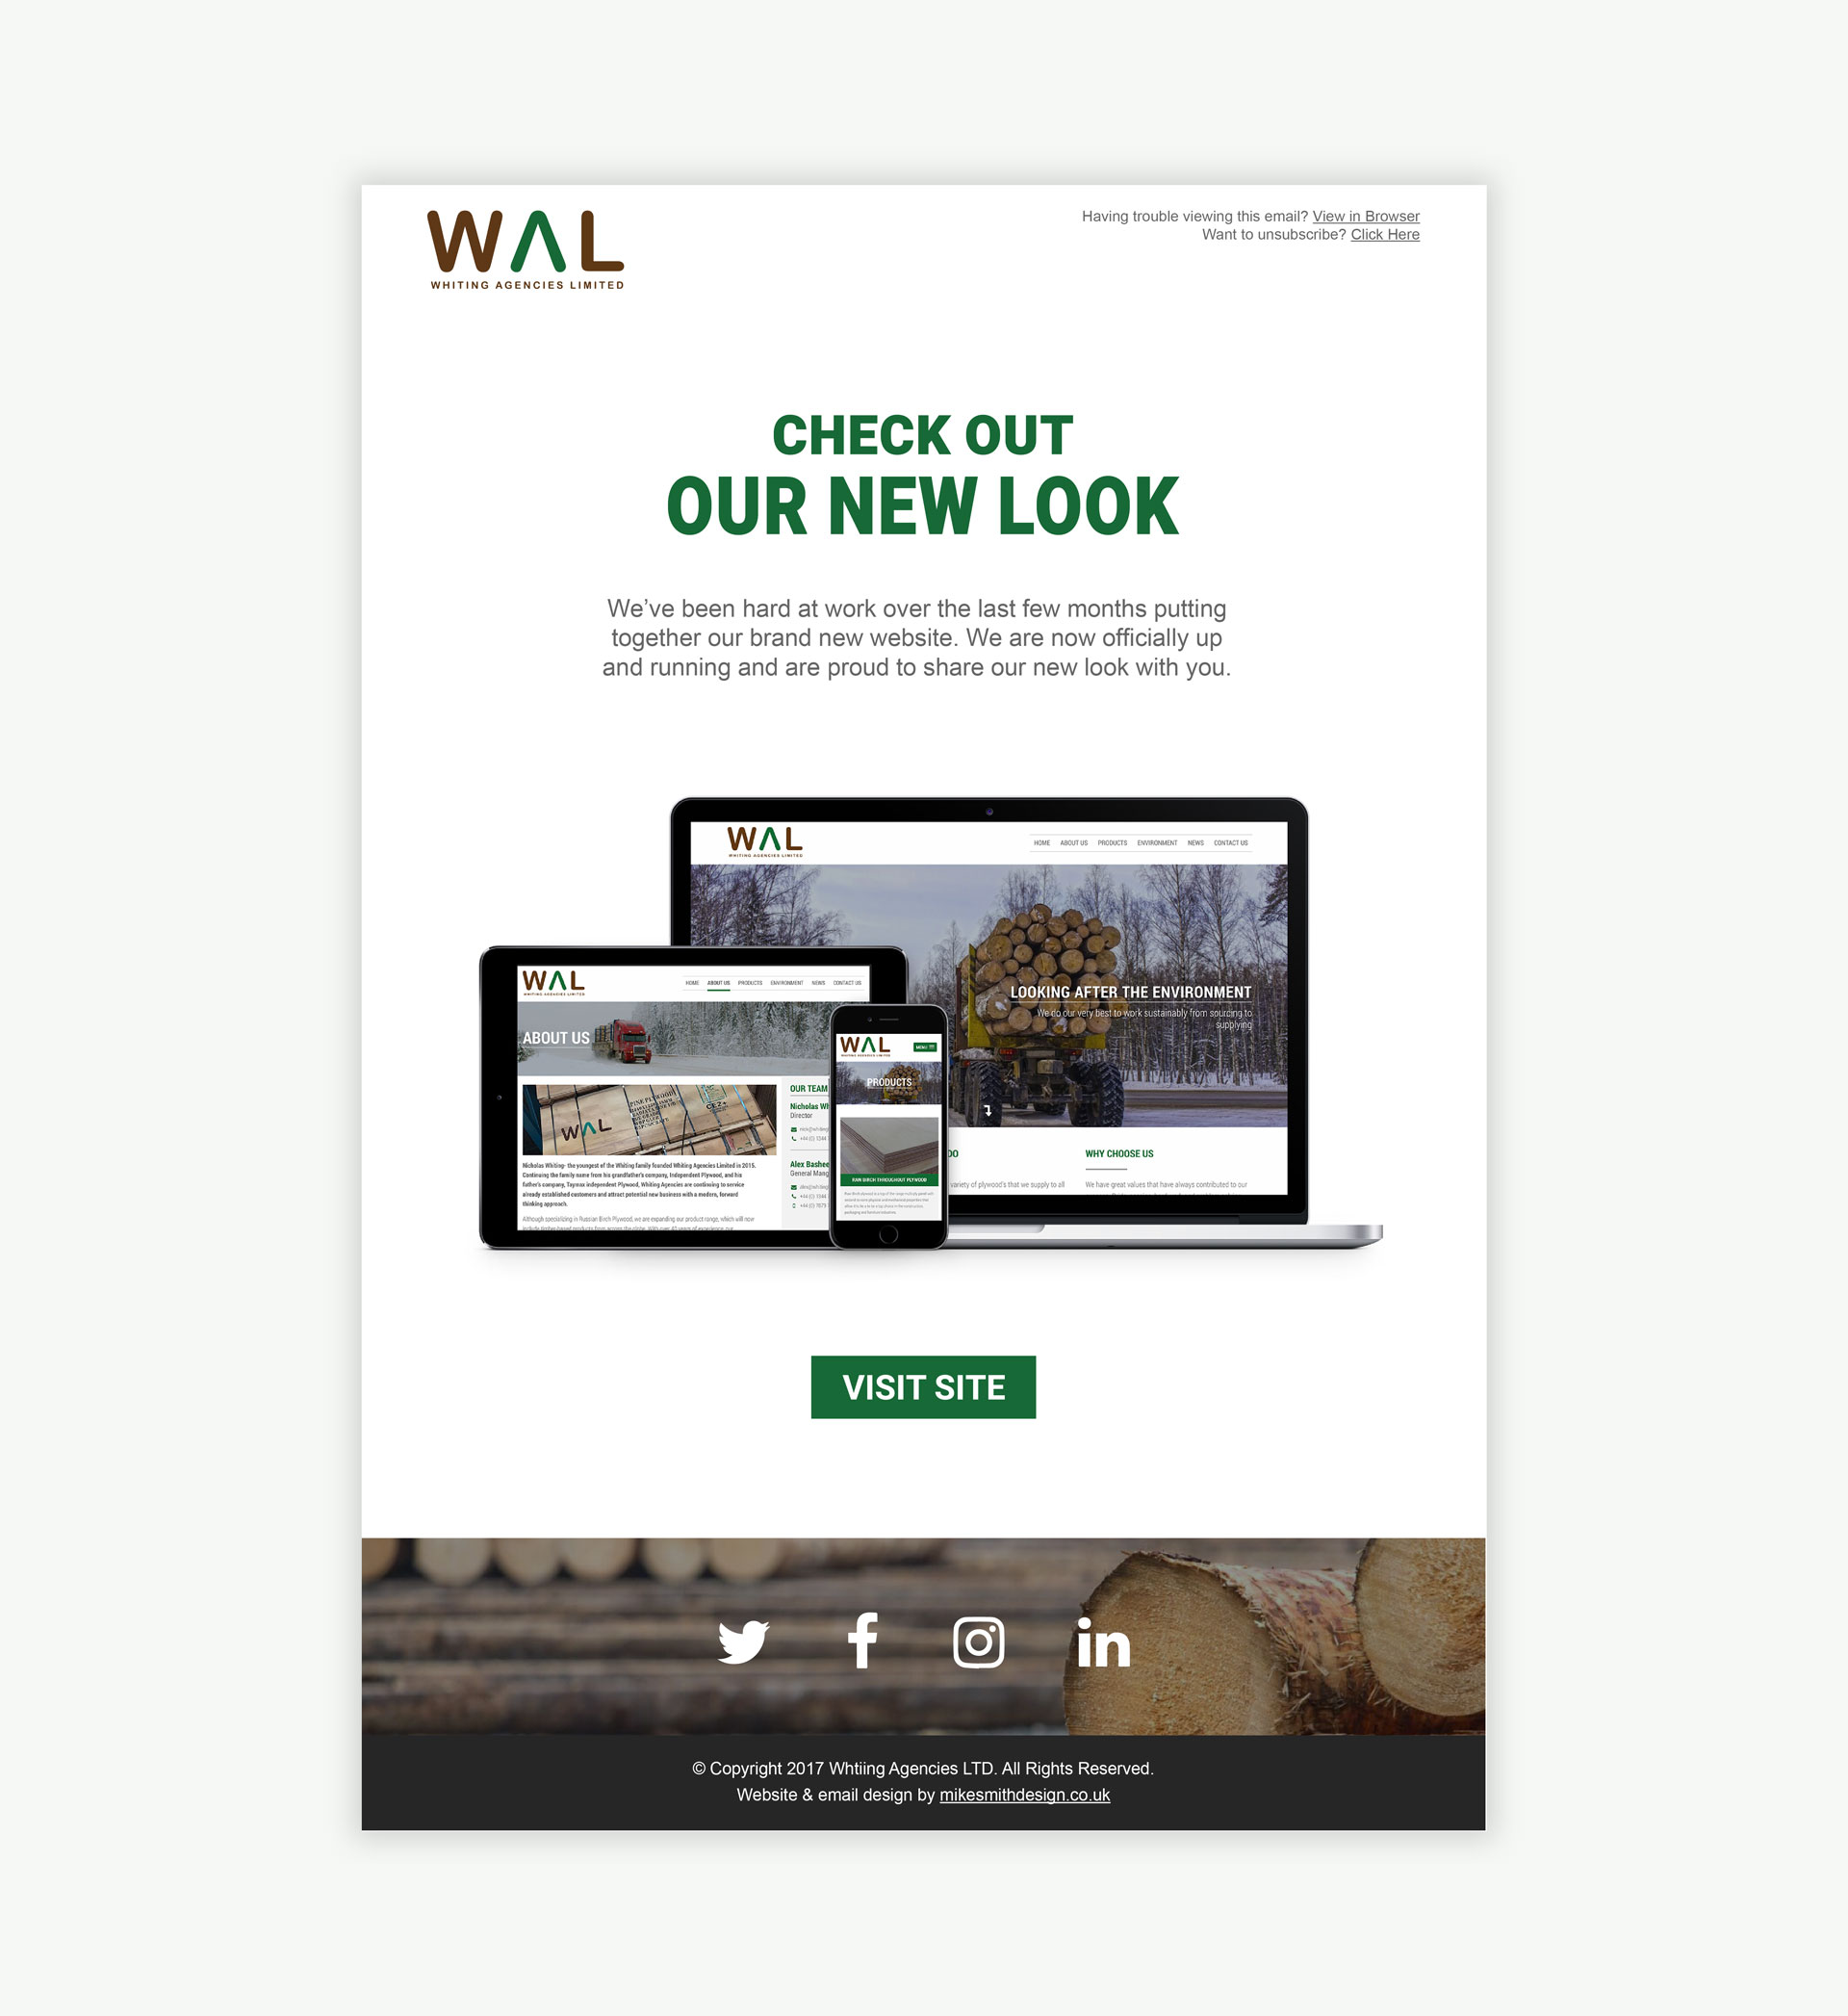 Whiting Agencies Limited Email Campaign